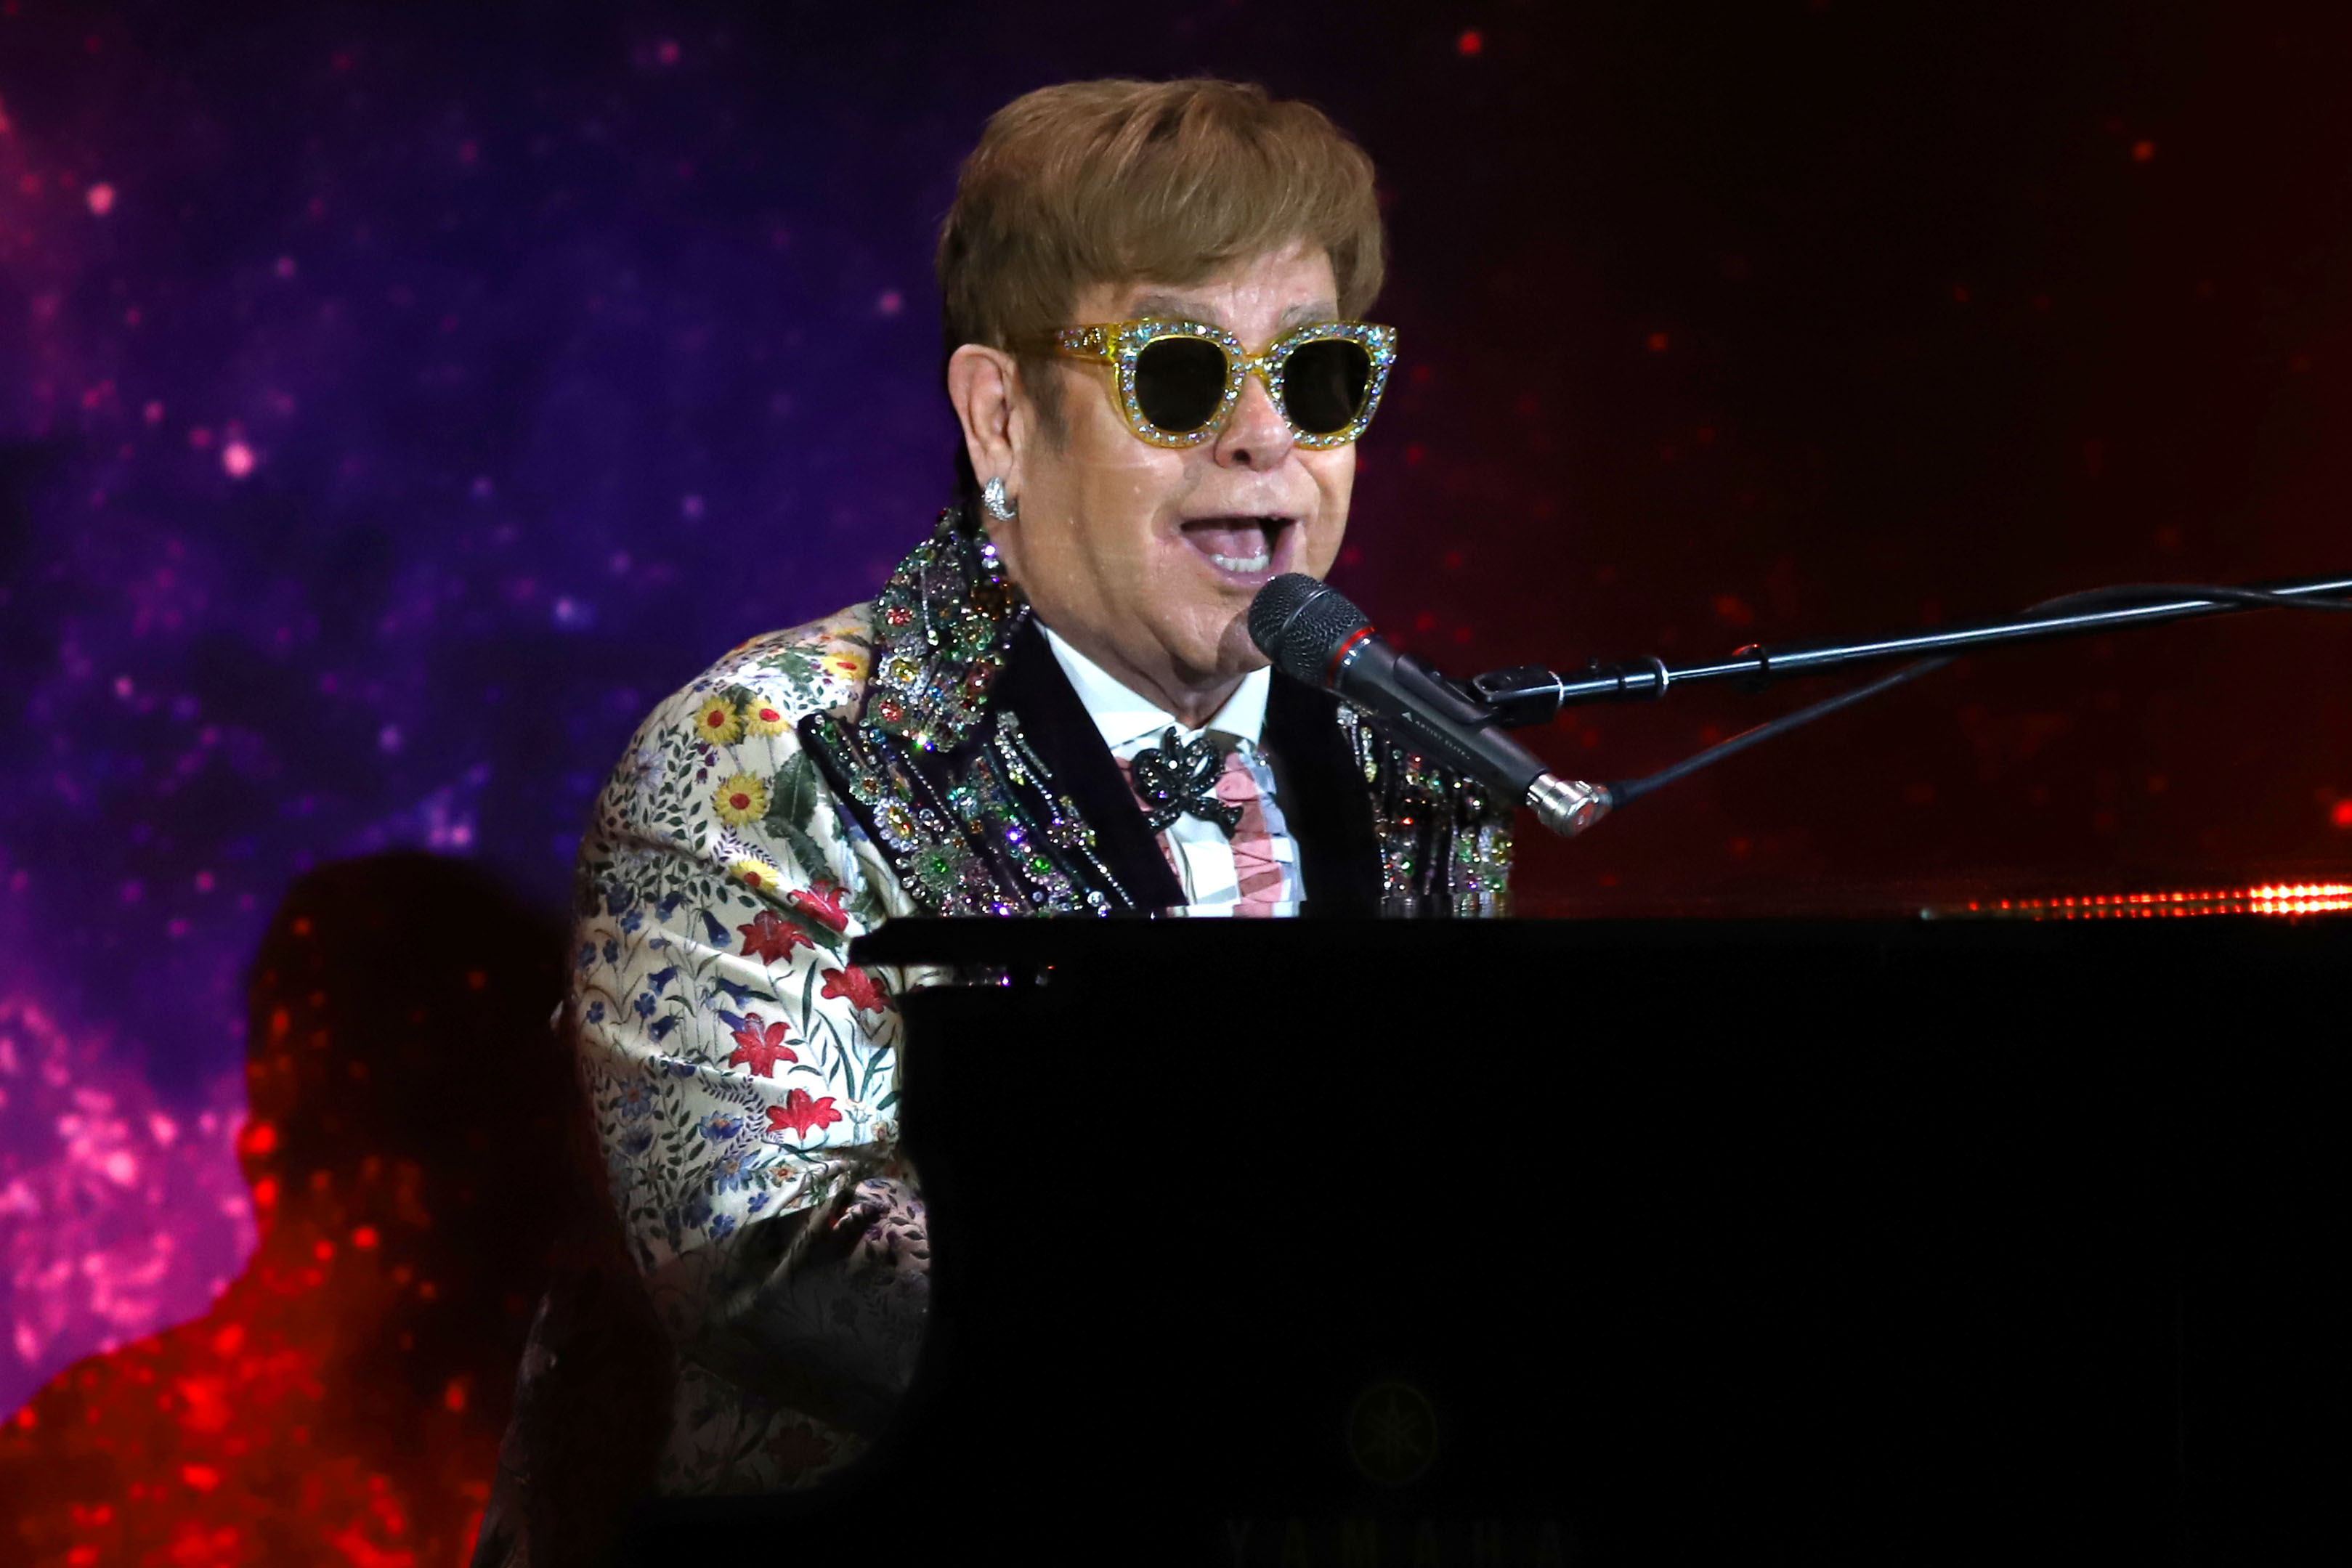 Step Into Christmas.Story Behind The Christmas Song Elton John S Step Into